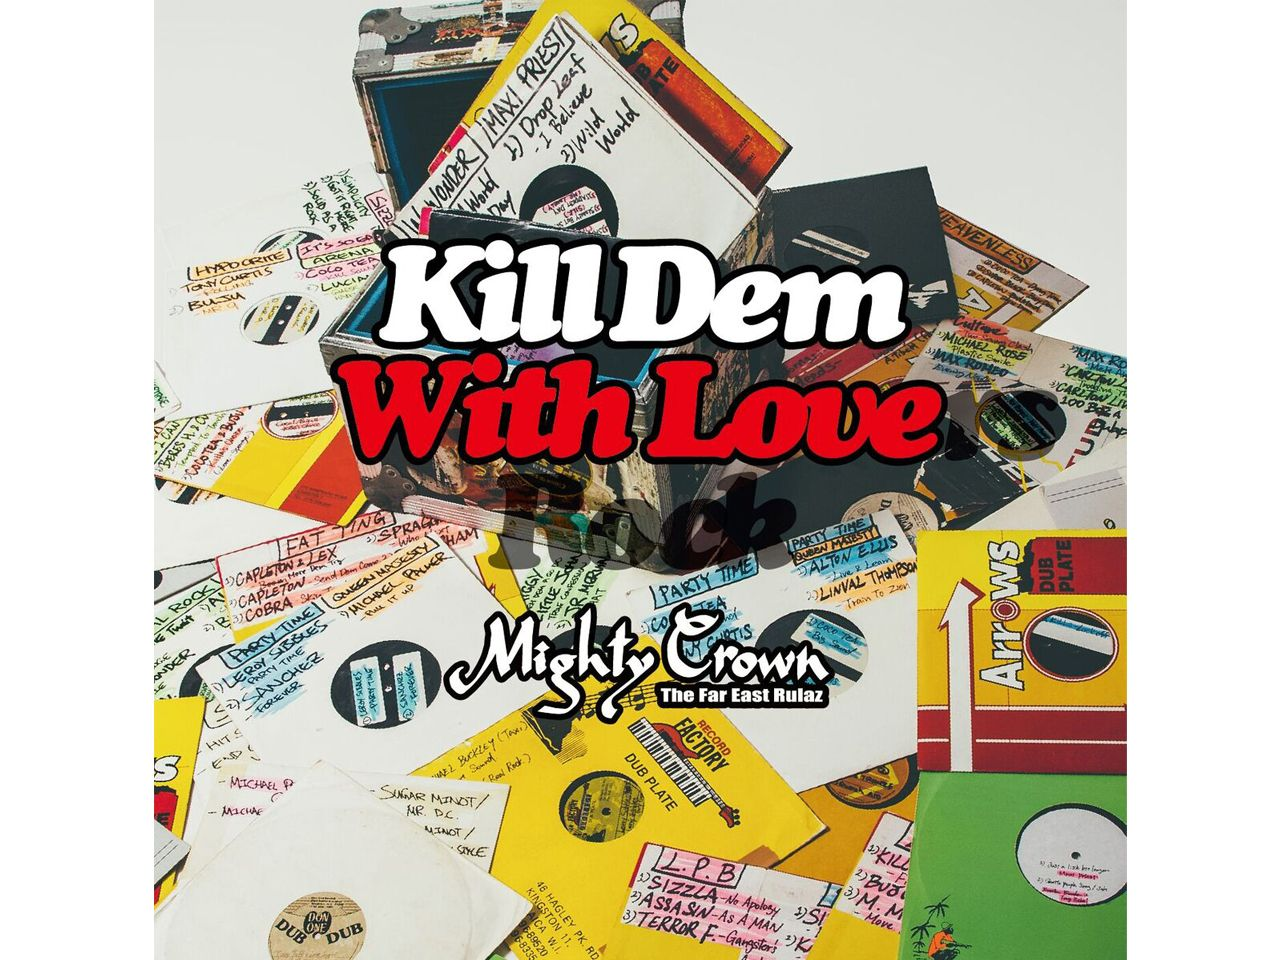 【再入荷】KILL DEM WITH LOVERS ROCK -MIGHTY CROWN-